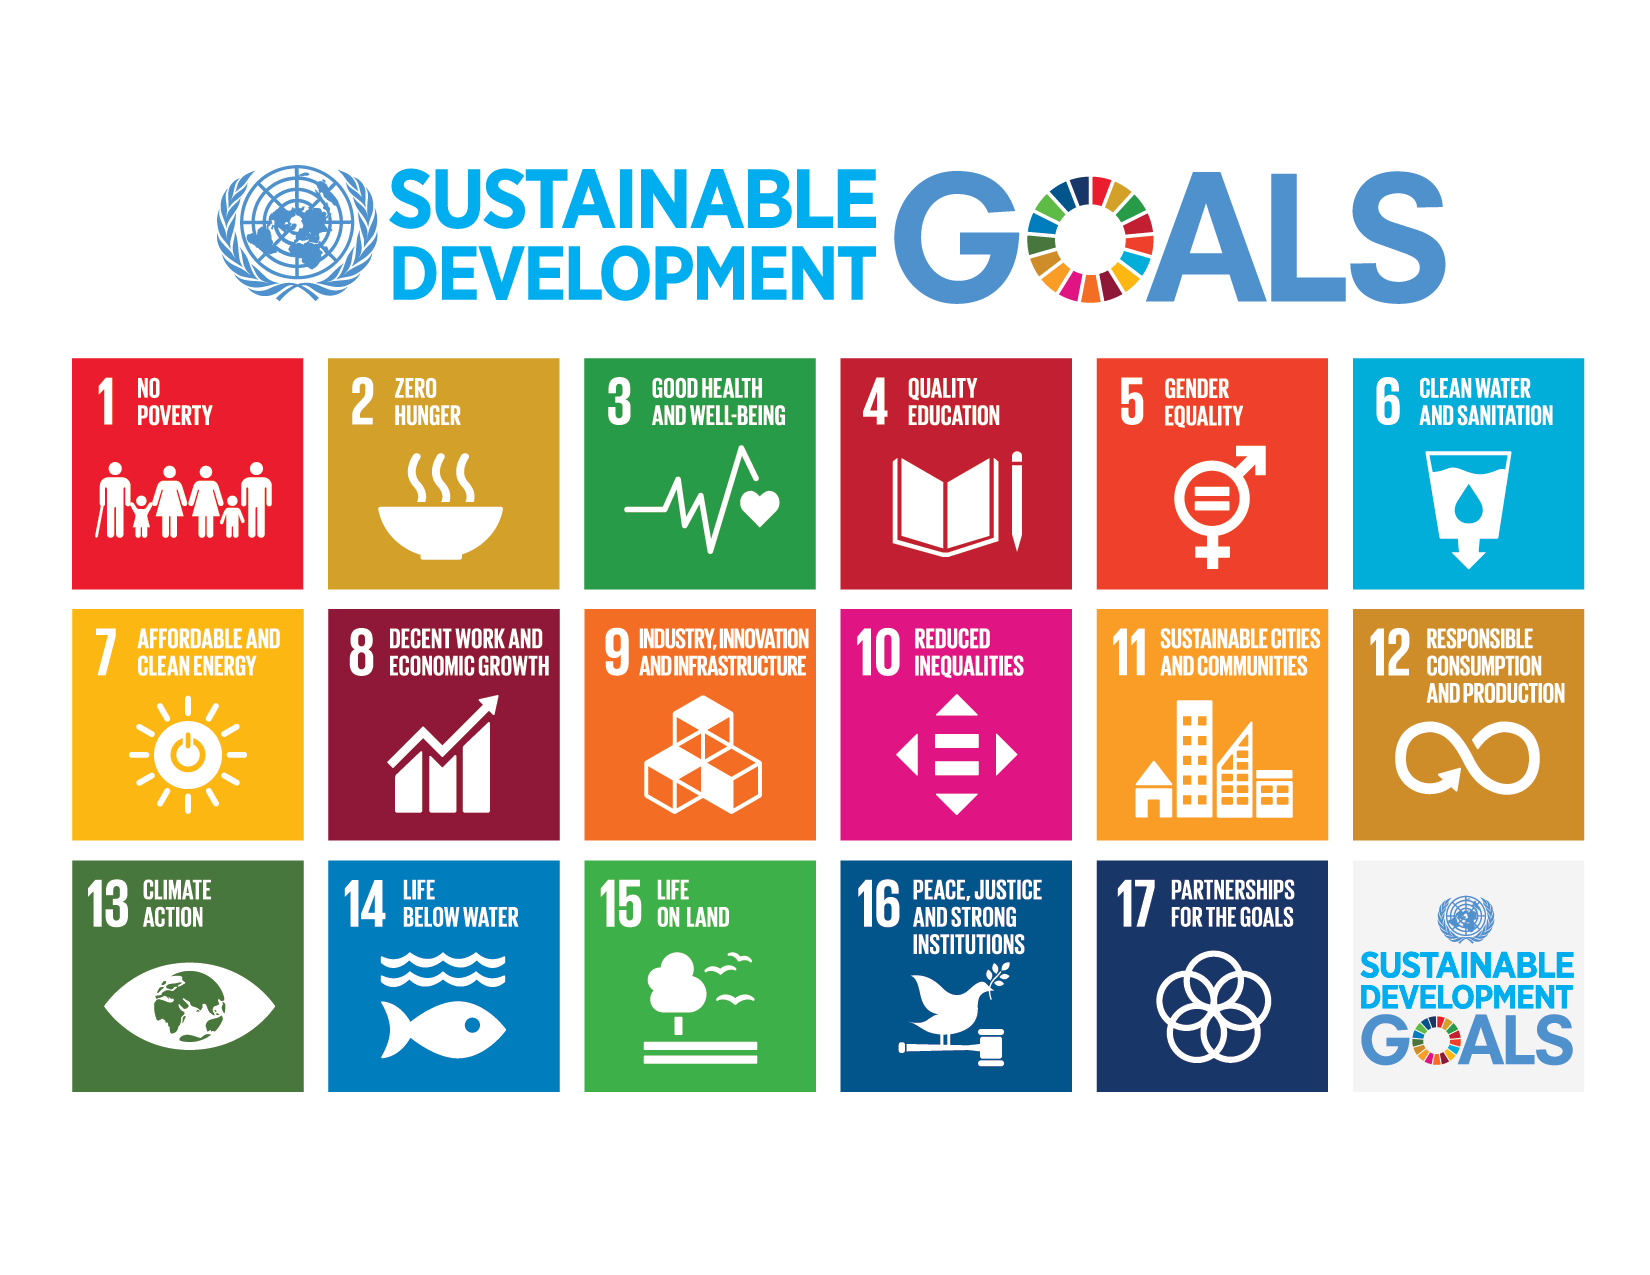 http://files.b-token.nl/files/437/original/E_2018_SDG_Poster_with_UN_emblem.png?1540192529